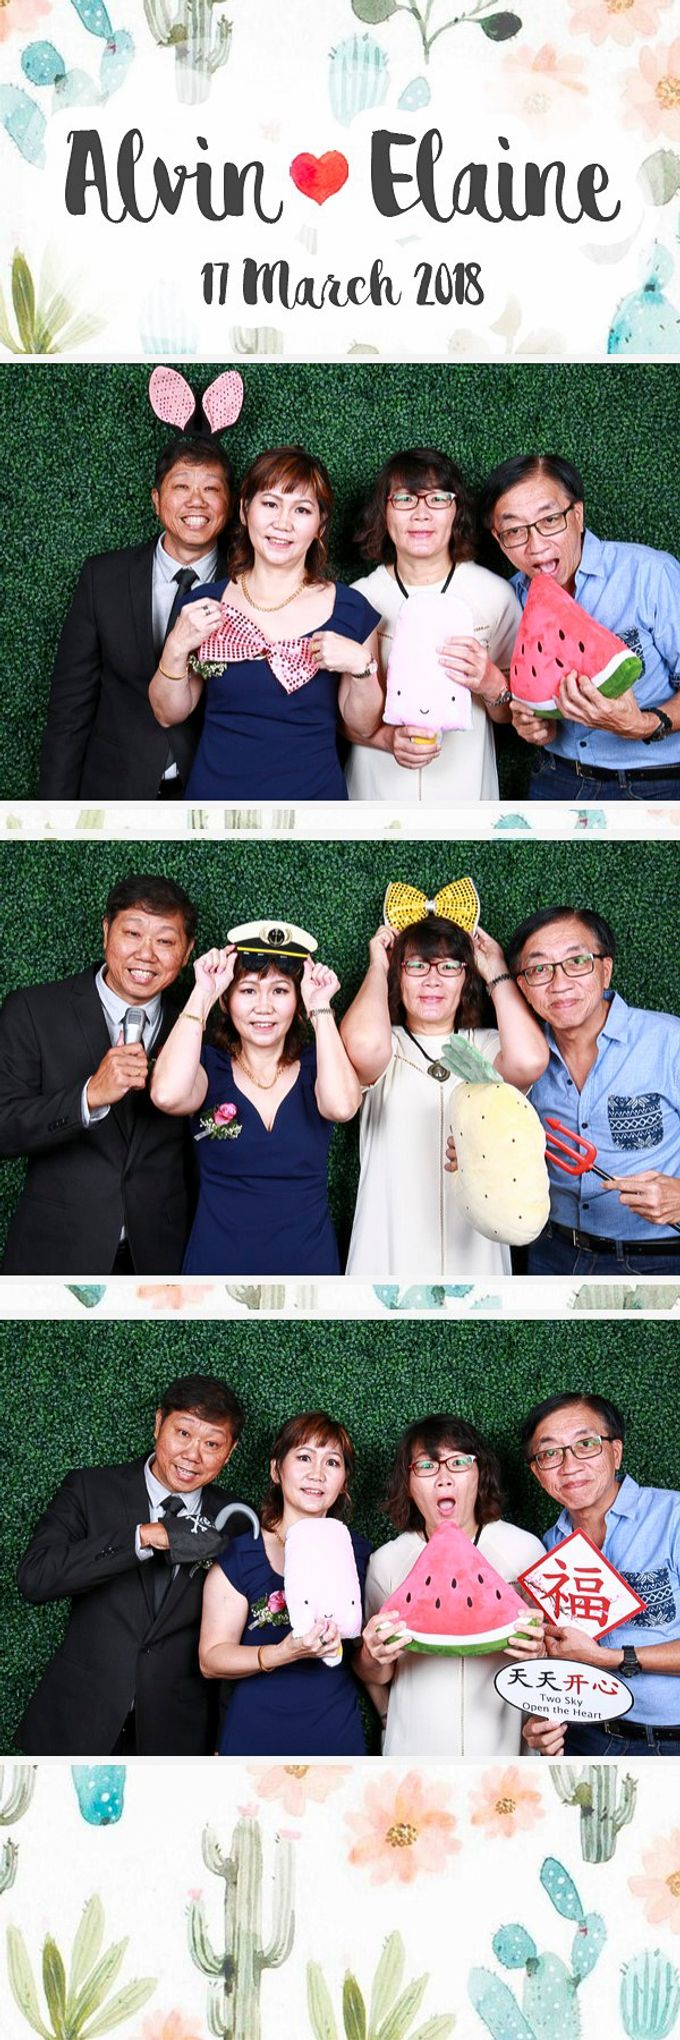 Alvin & Elaine Wedding Photo Booth by Hotel Jen Tanglin, Singapore - 004